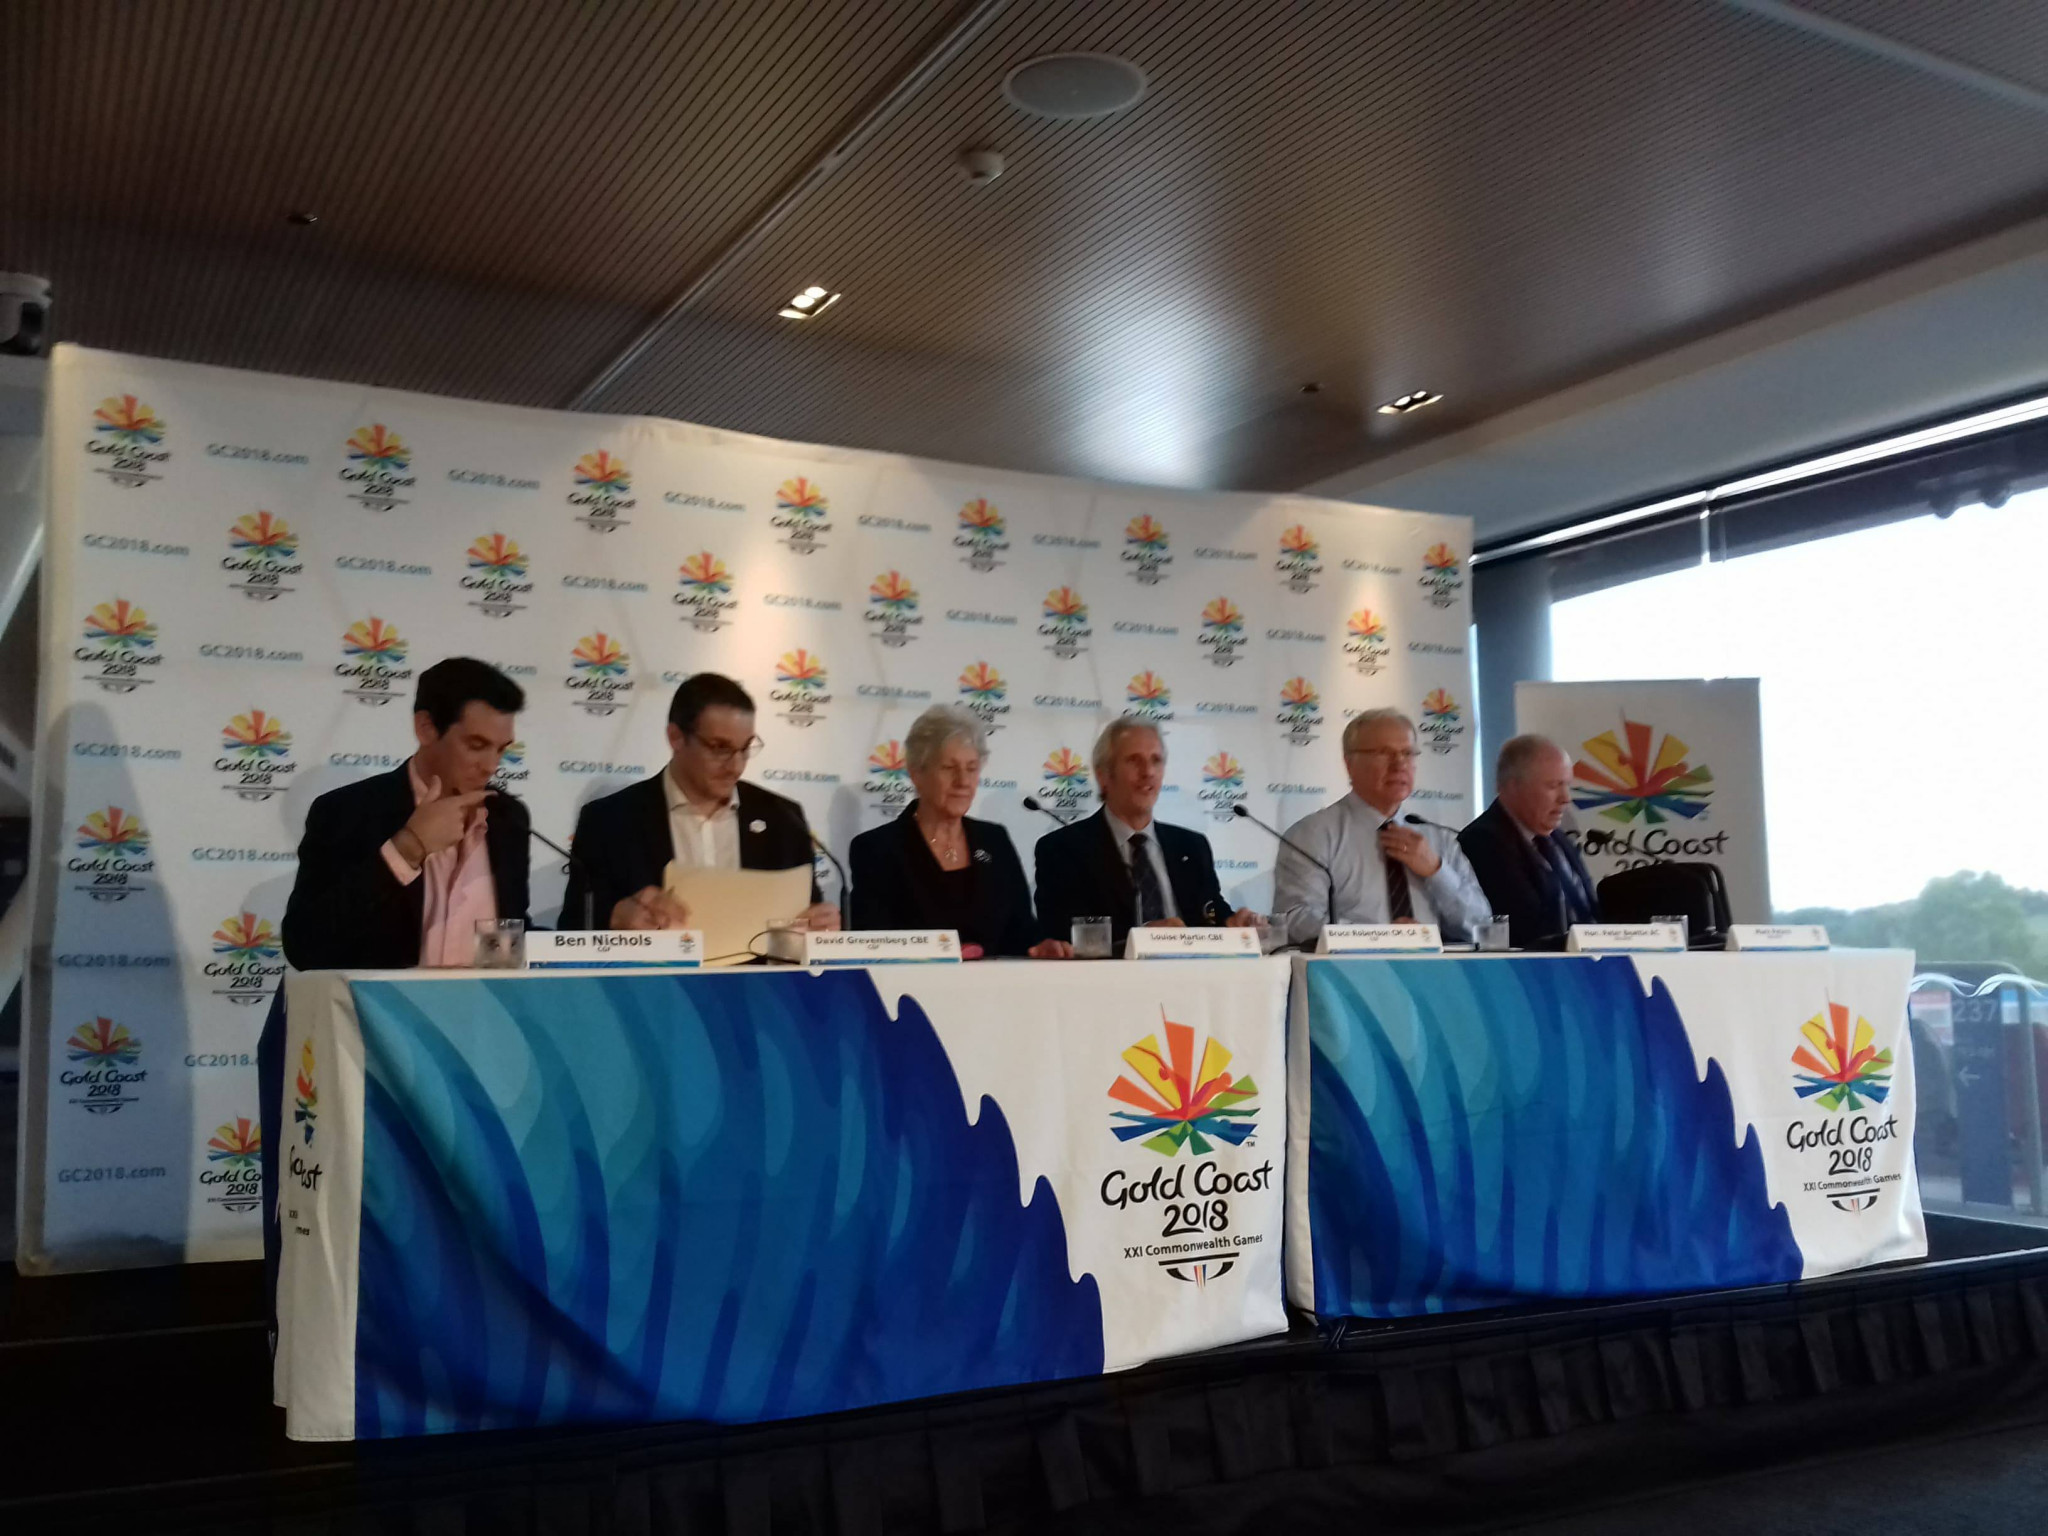 Coordination Commission chair claims Gold Coast 2018 have foundation to deliver excellent Commonwealth Games